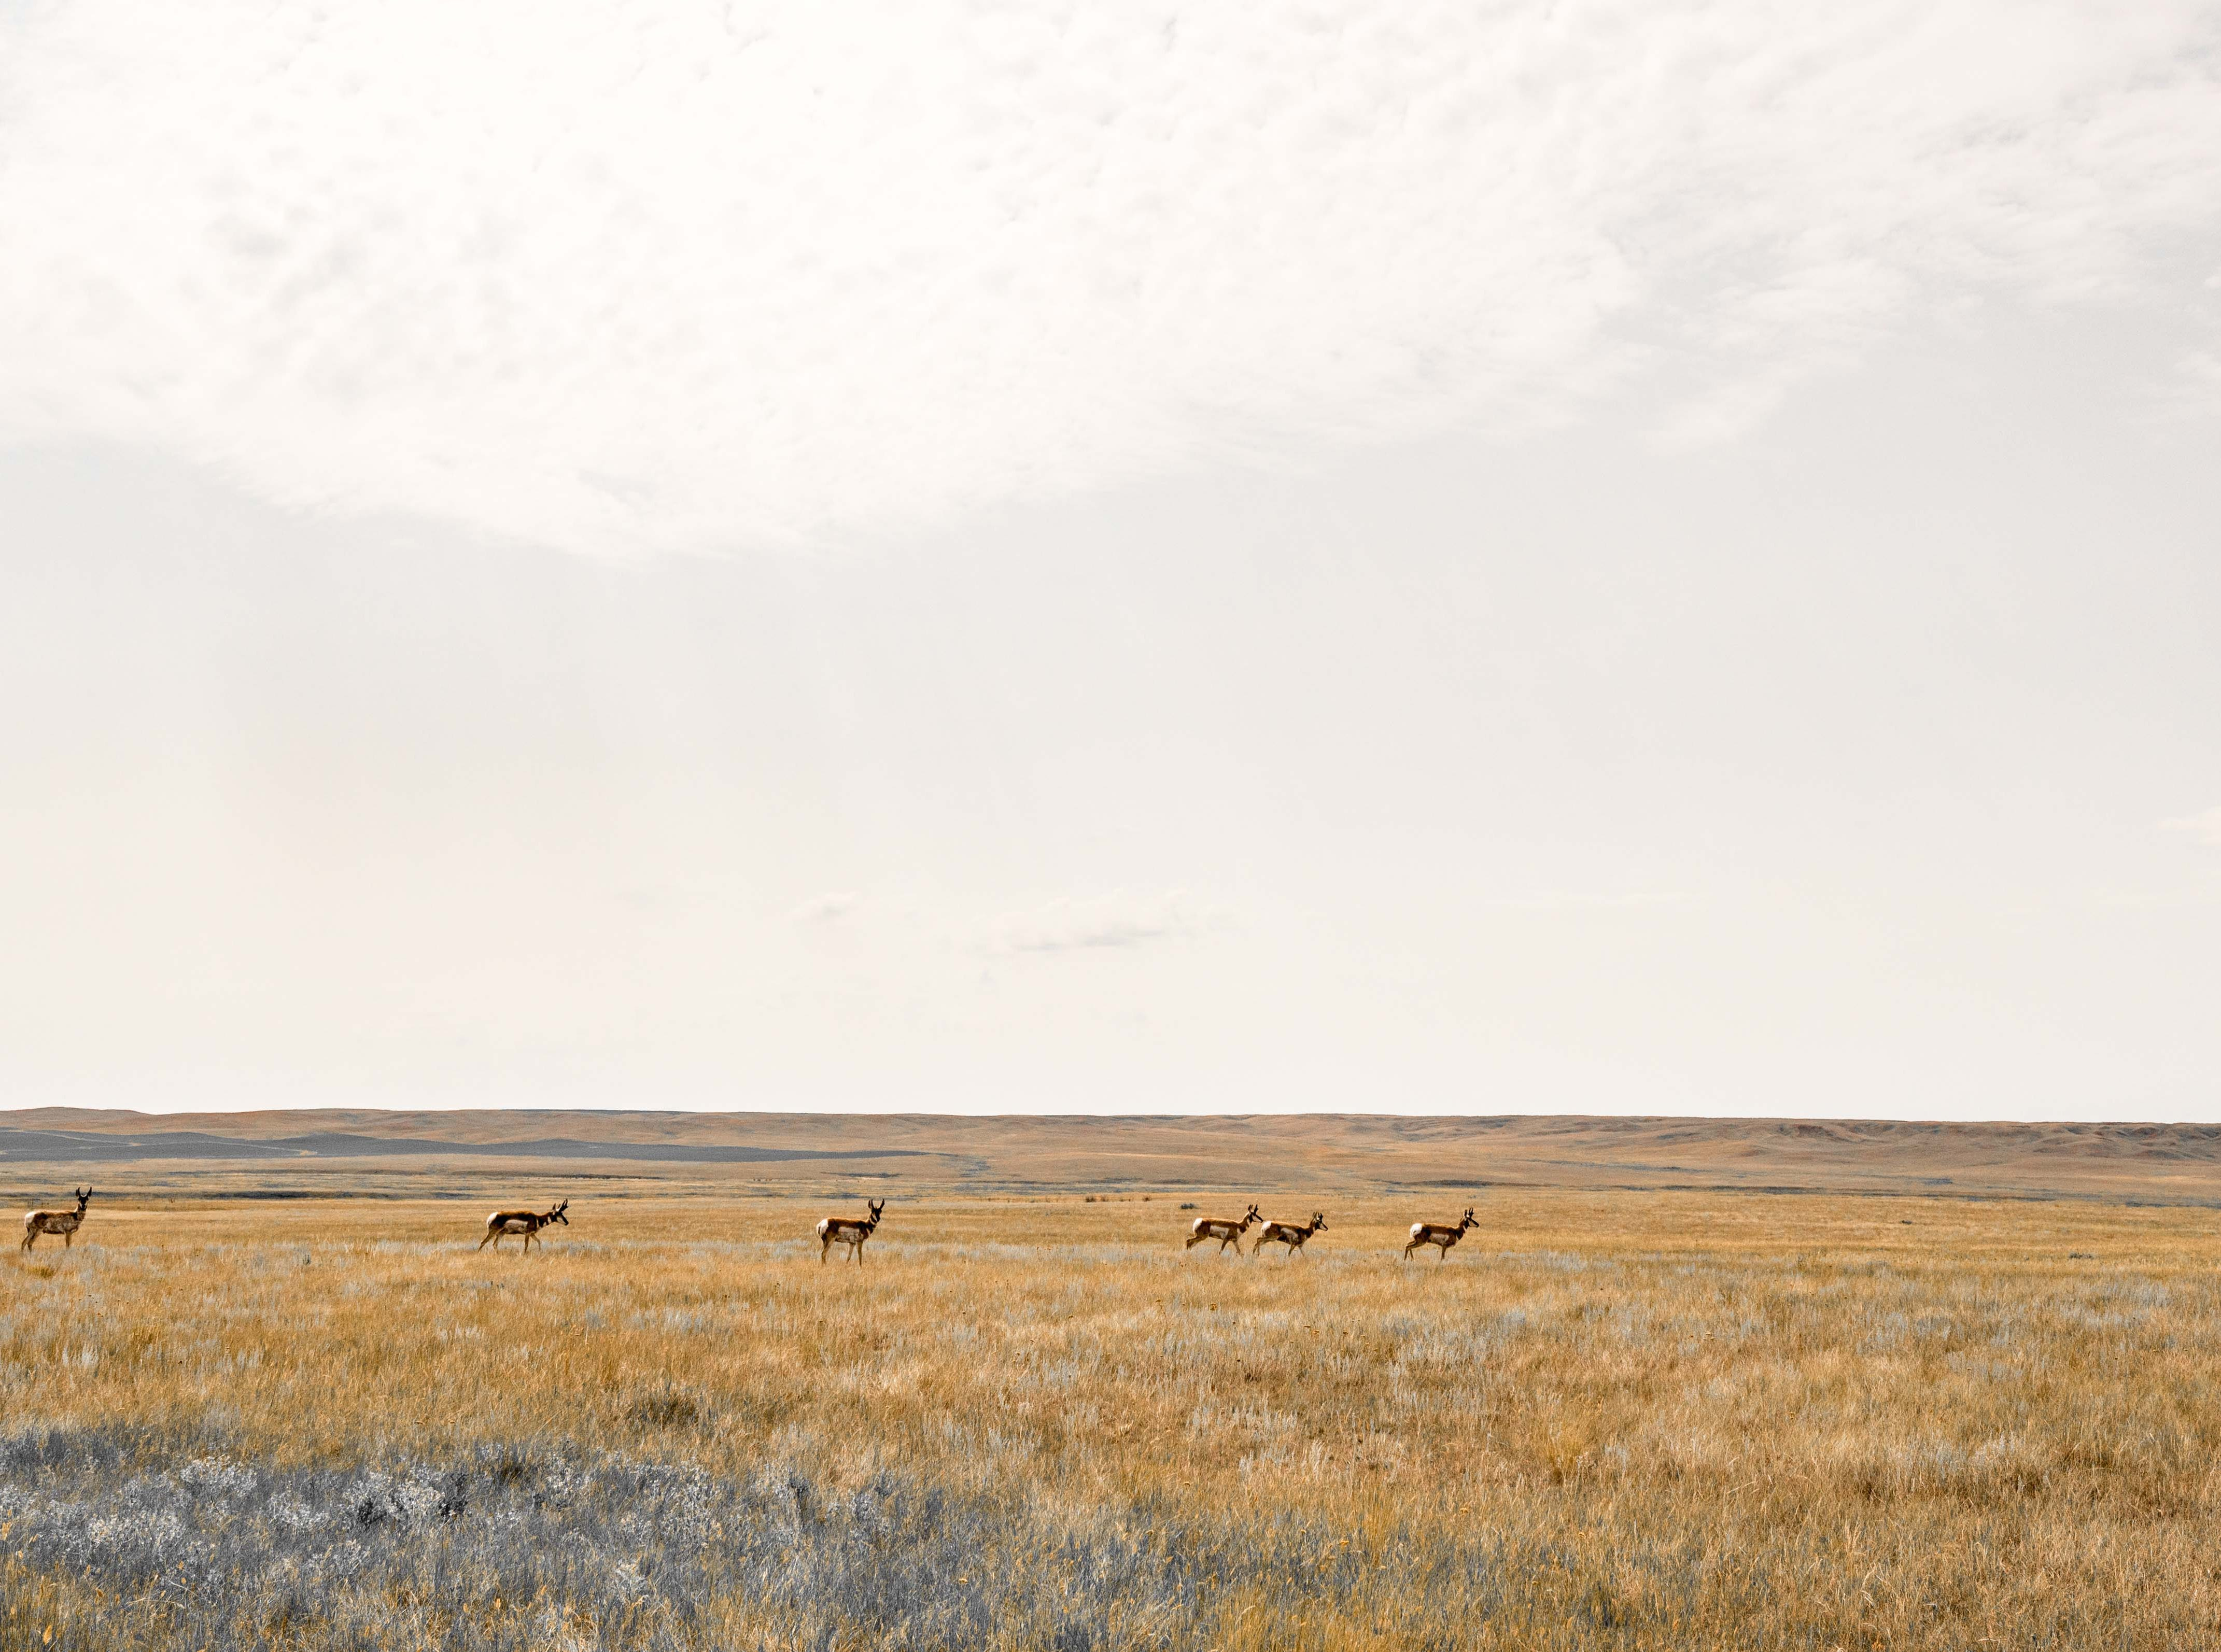 Montana's middle of nowhere is where the antelope roam.